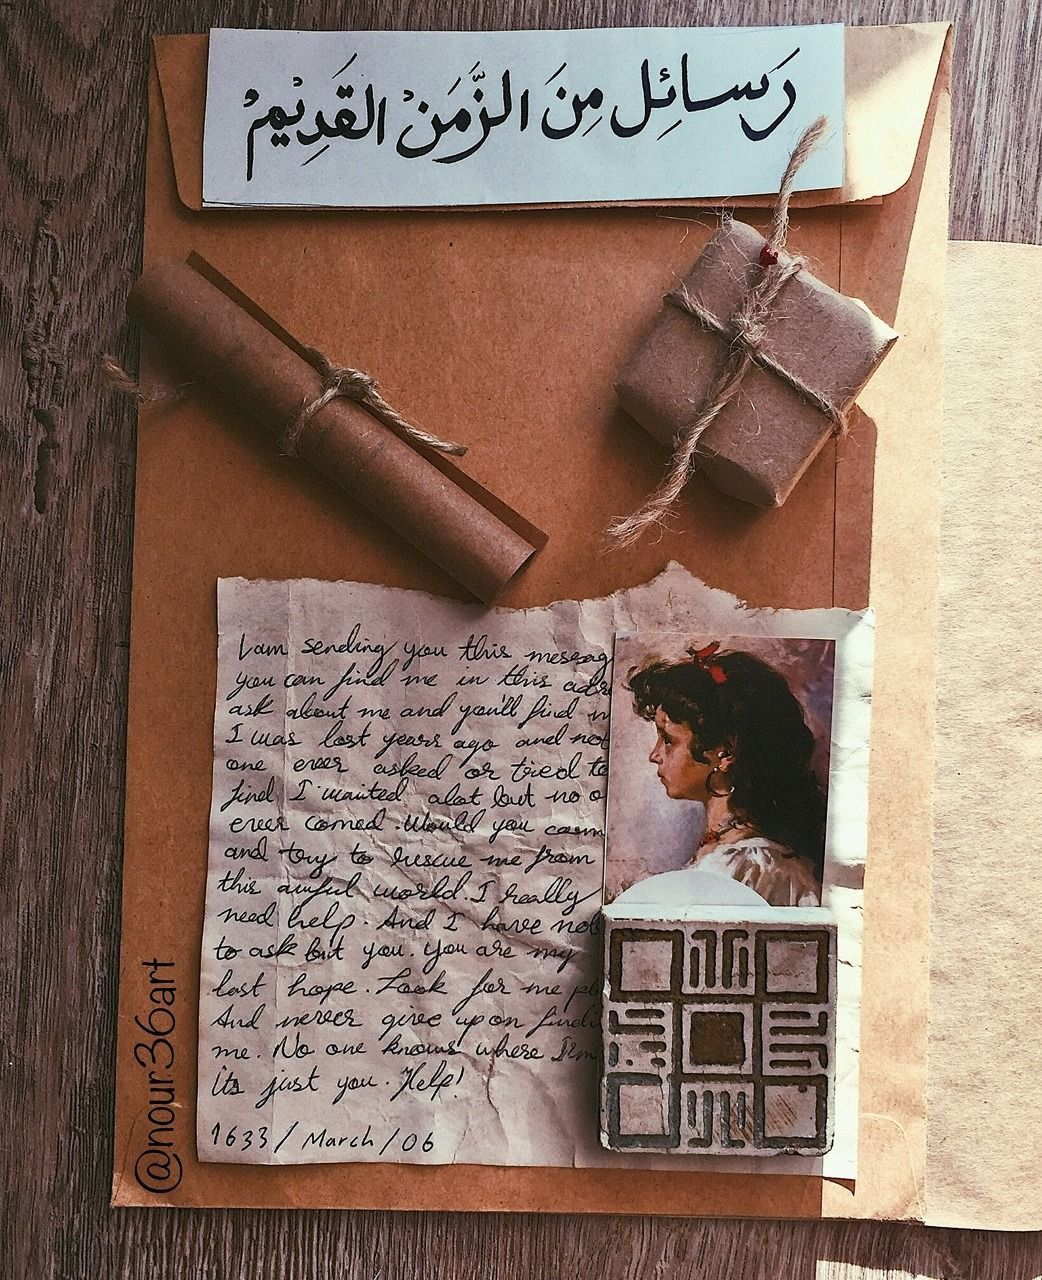 Pin By Ateeq On رسائل و مكاتيب Beautiful Arabic Words Arabic Quotes Paper Crafts Diy Kids